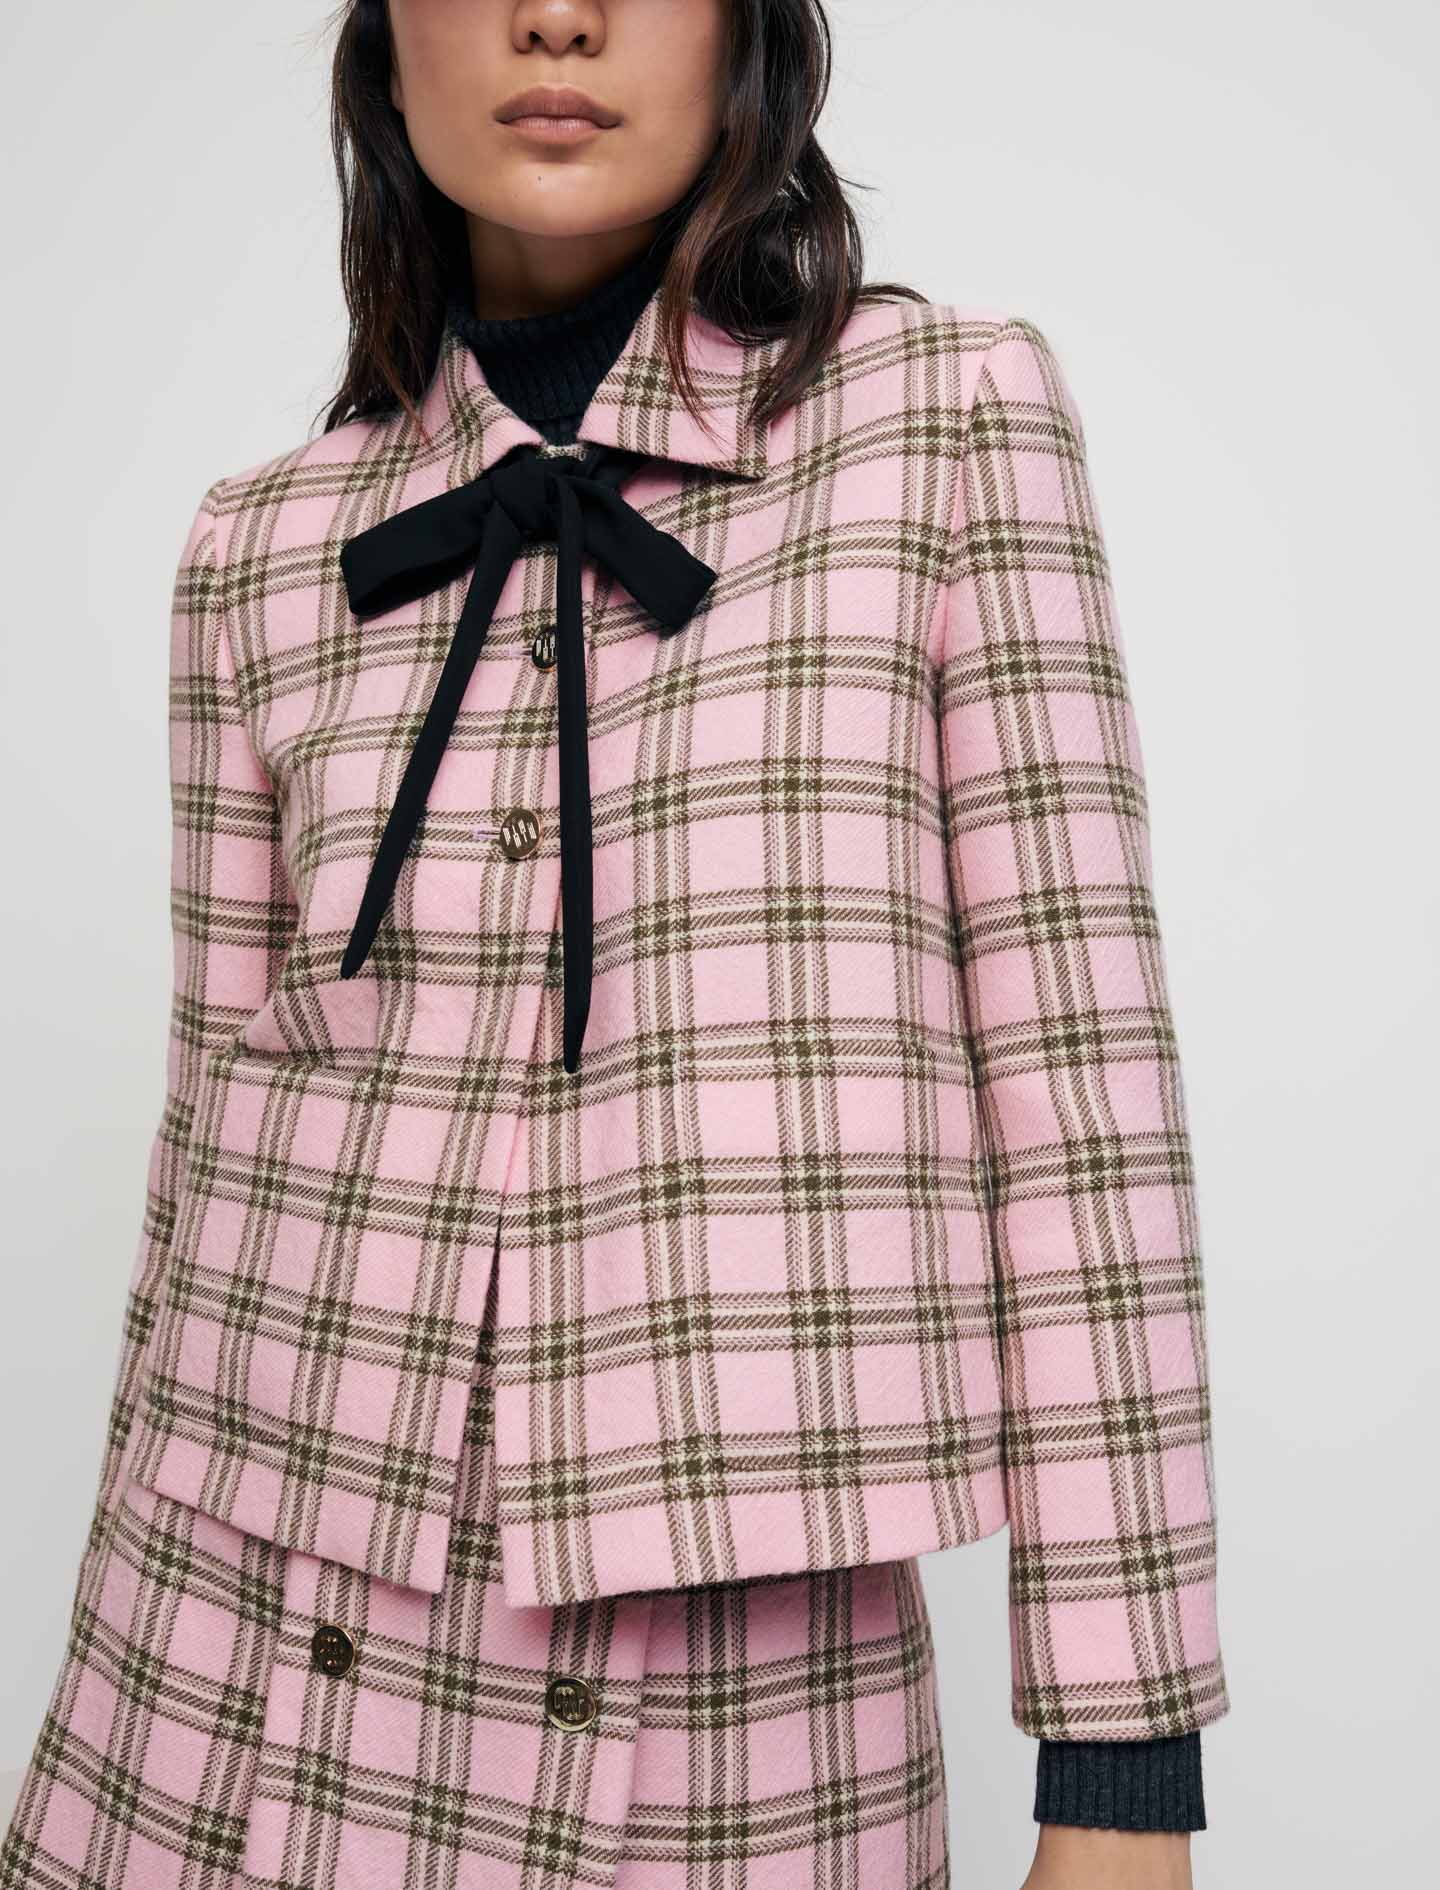 Checked jacket with contrasting necktie - Pink